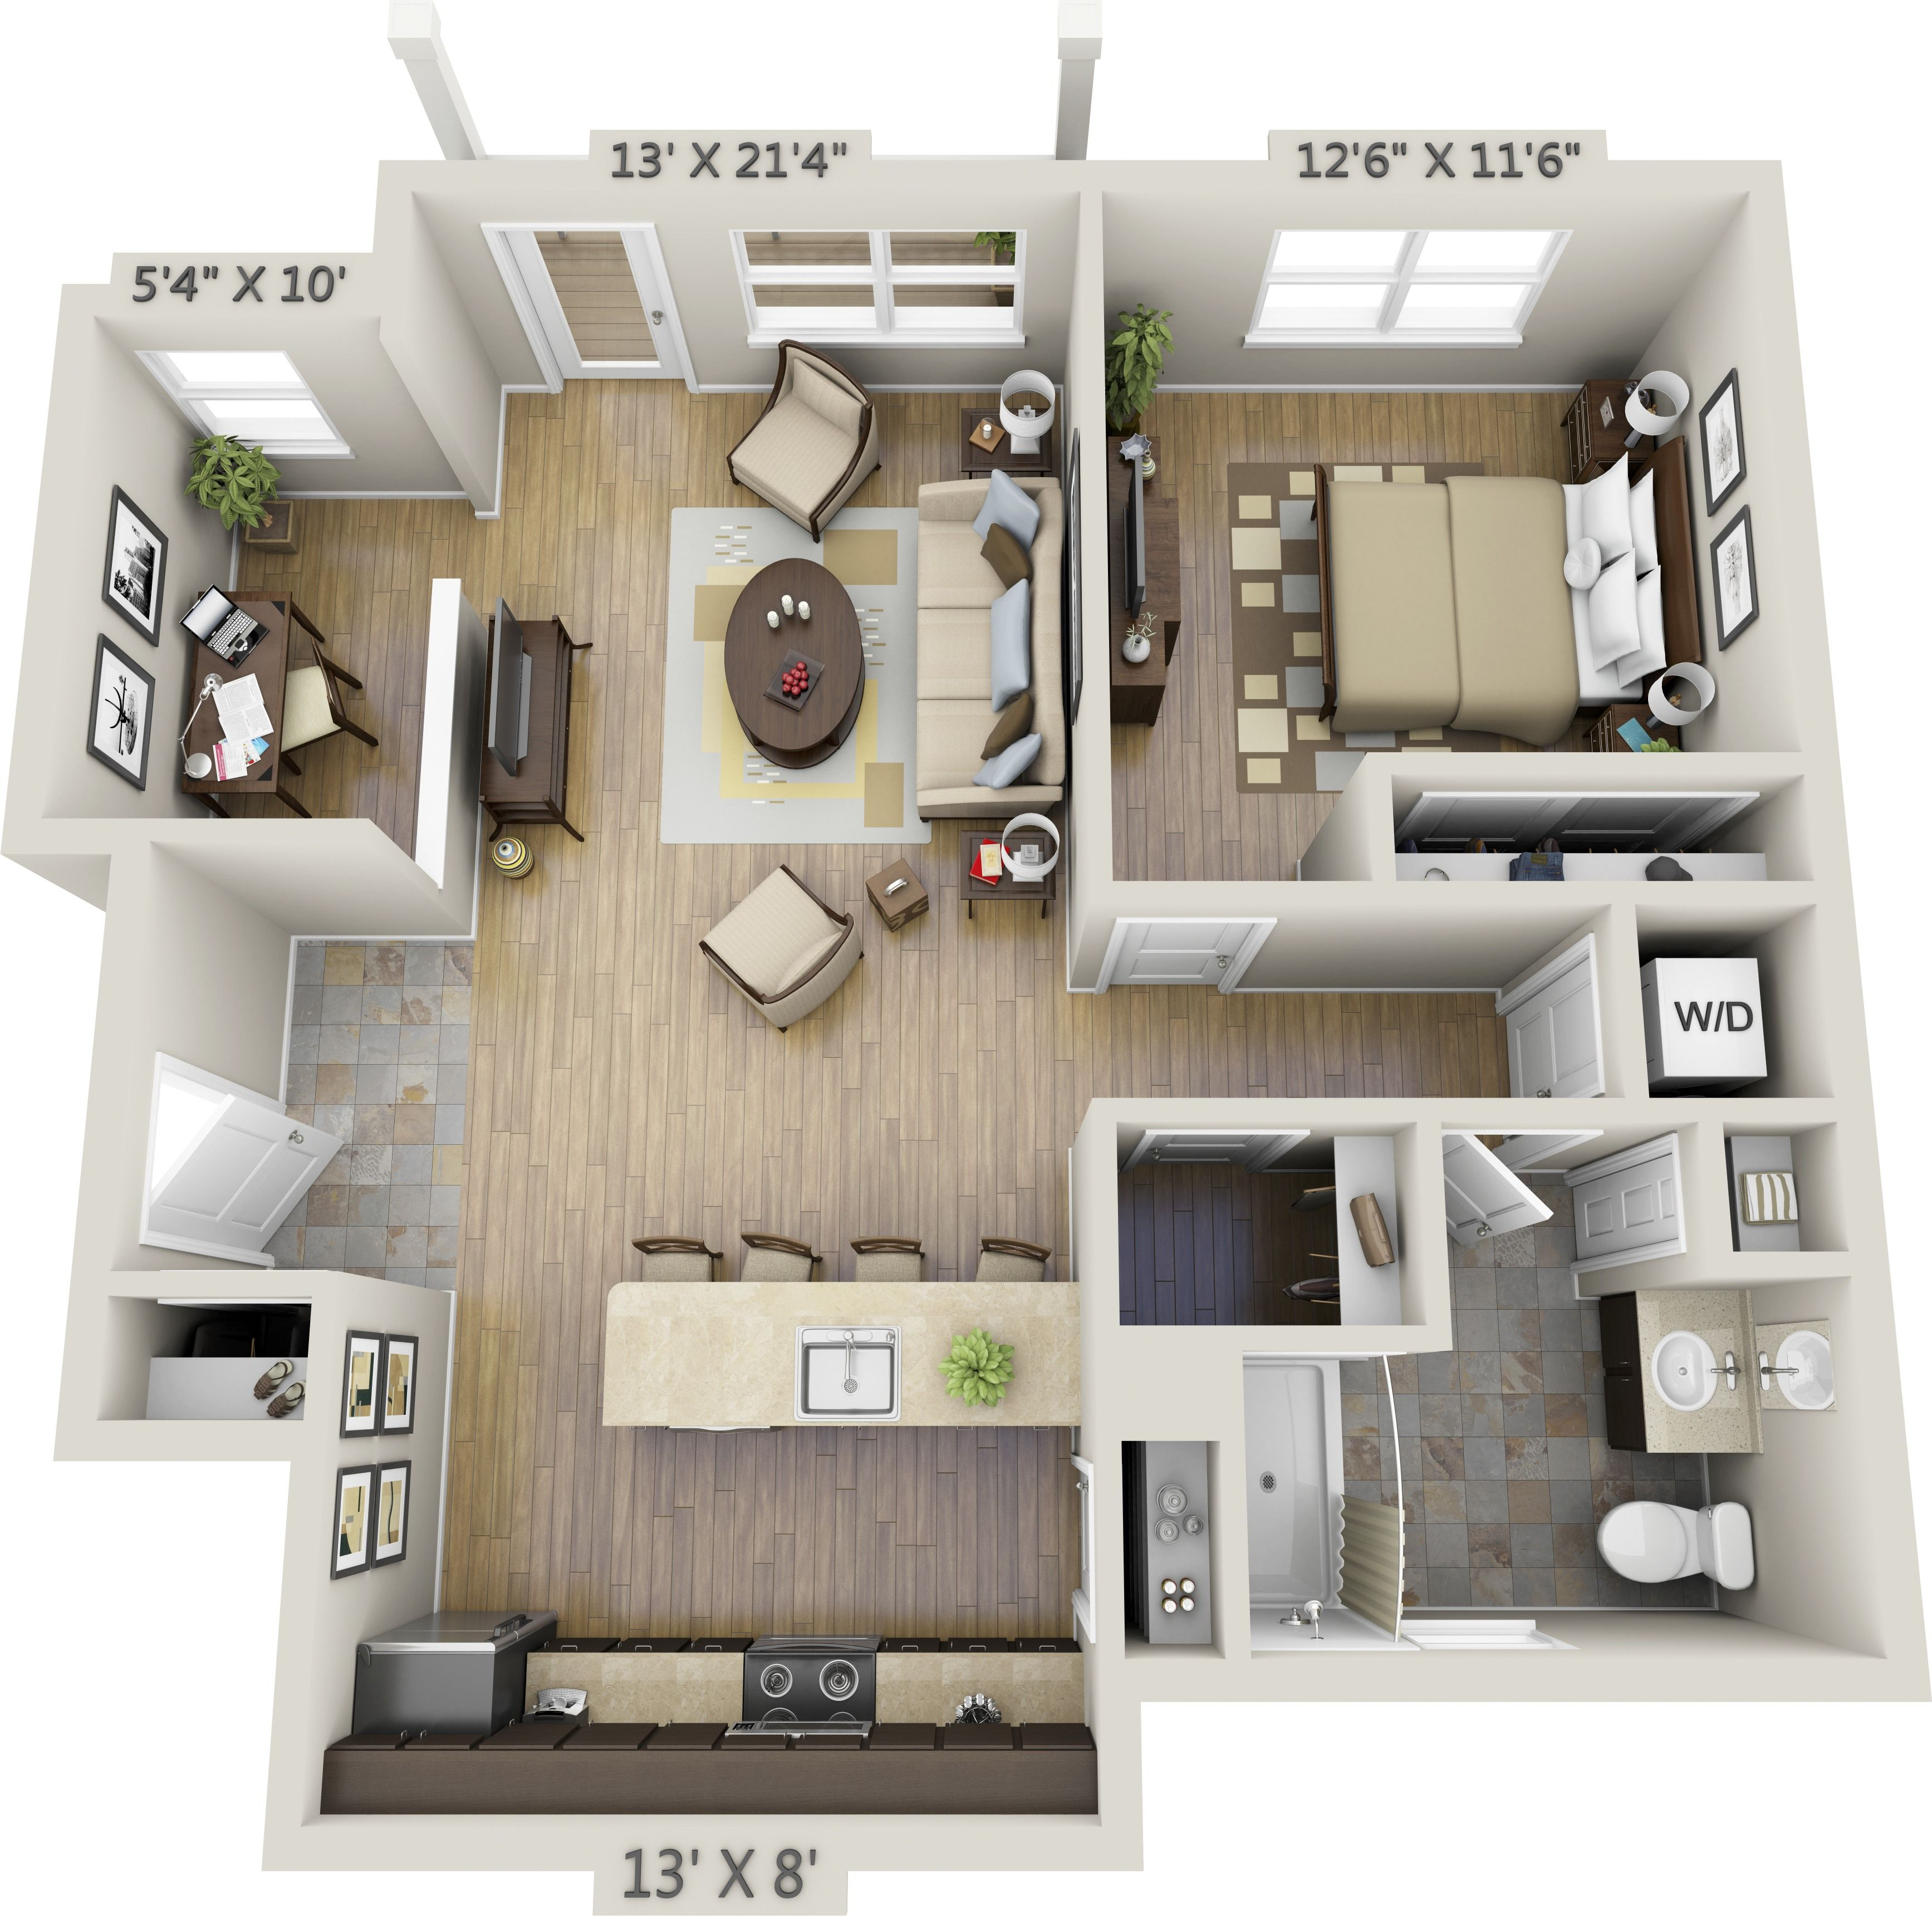 Apartments Cary Nc 1 Bedroom: Image Result For 1 Bedroom 3d Floor Plan